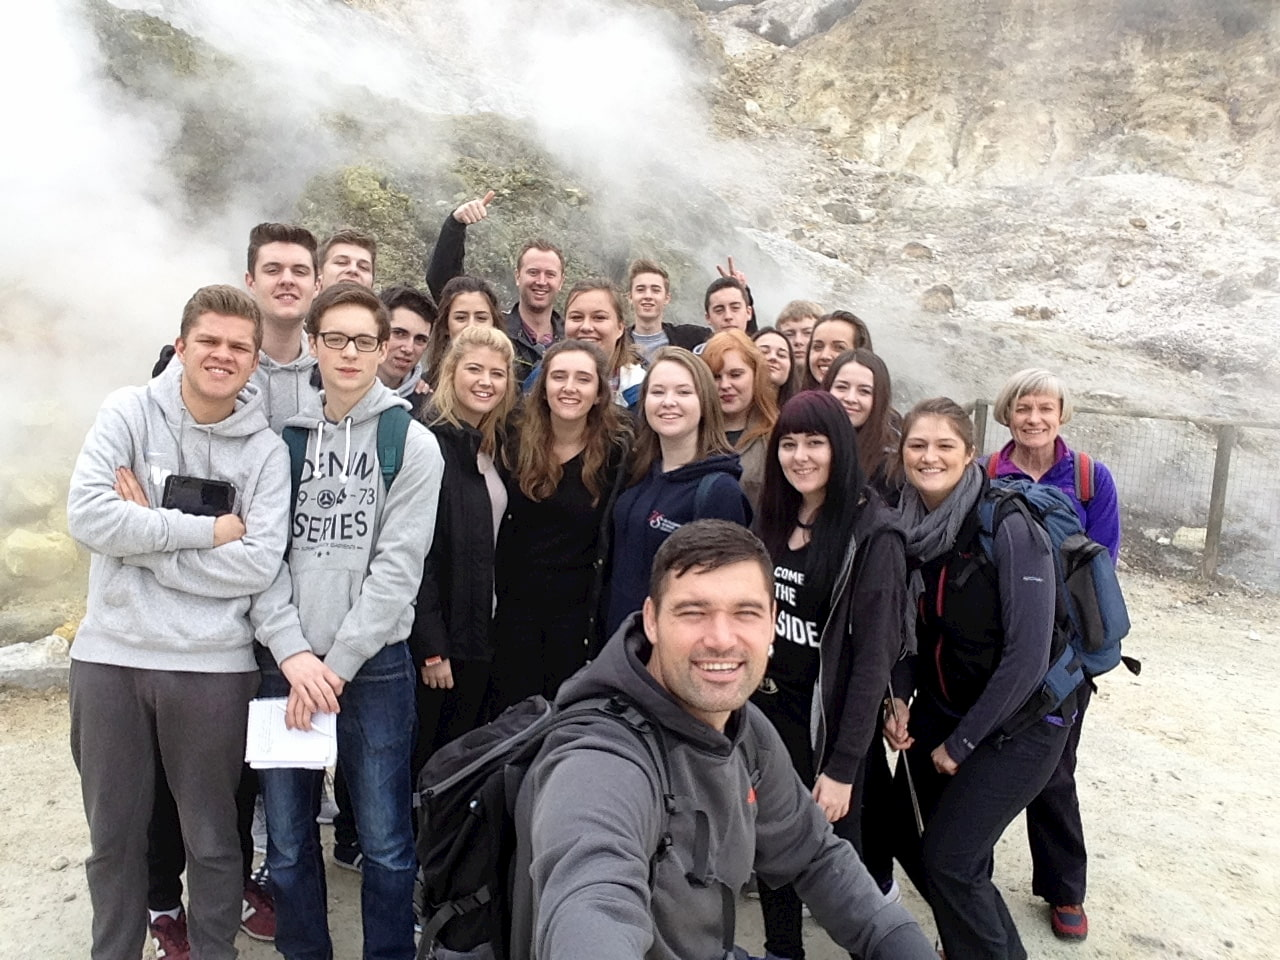 Safety & Insurance on Educational Trips